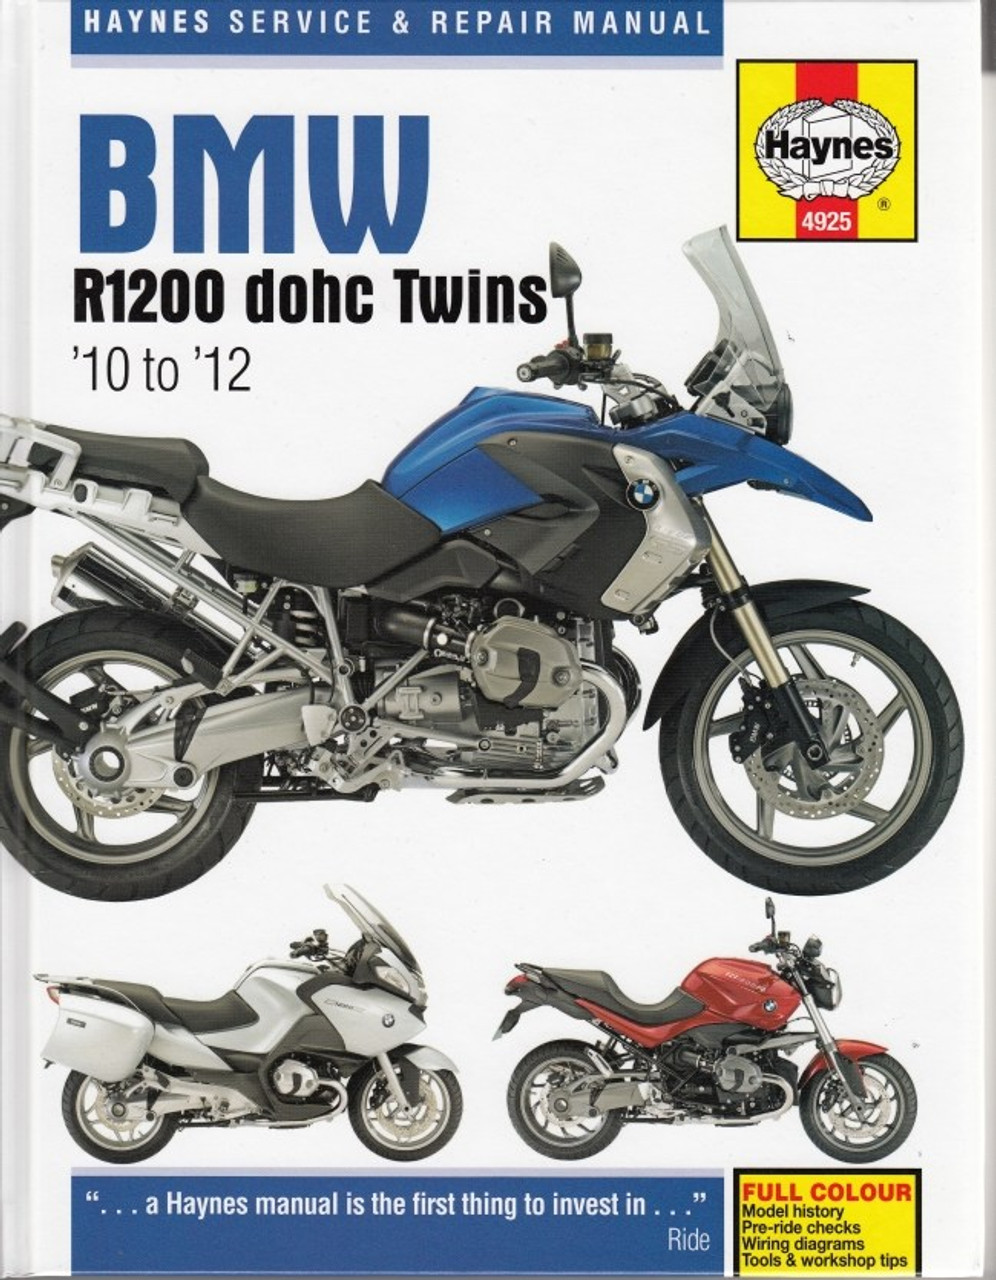 Bmw r1200rt radio manual pdf